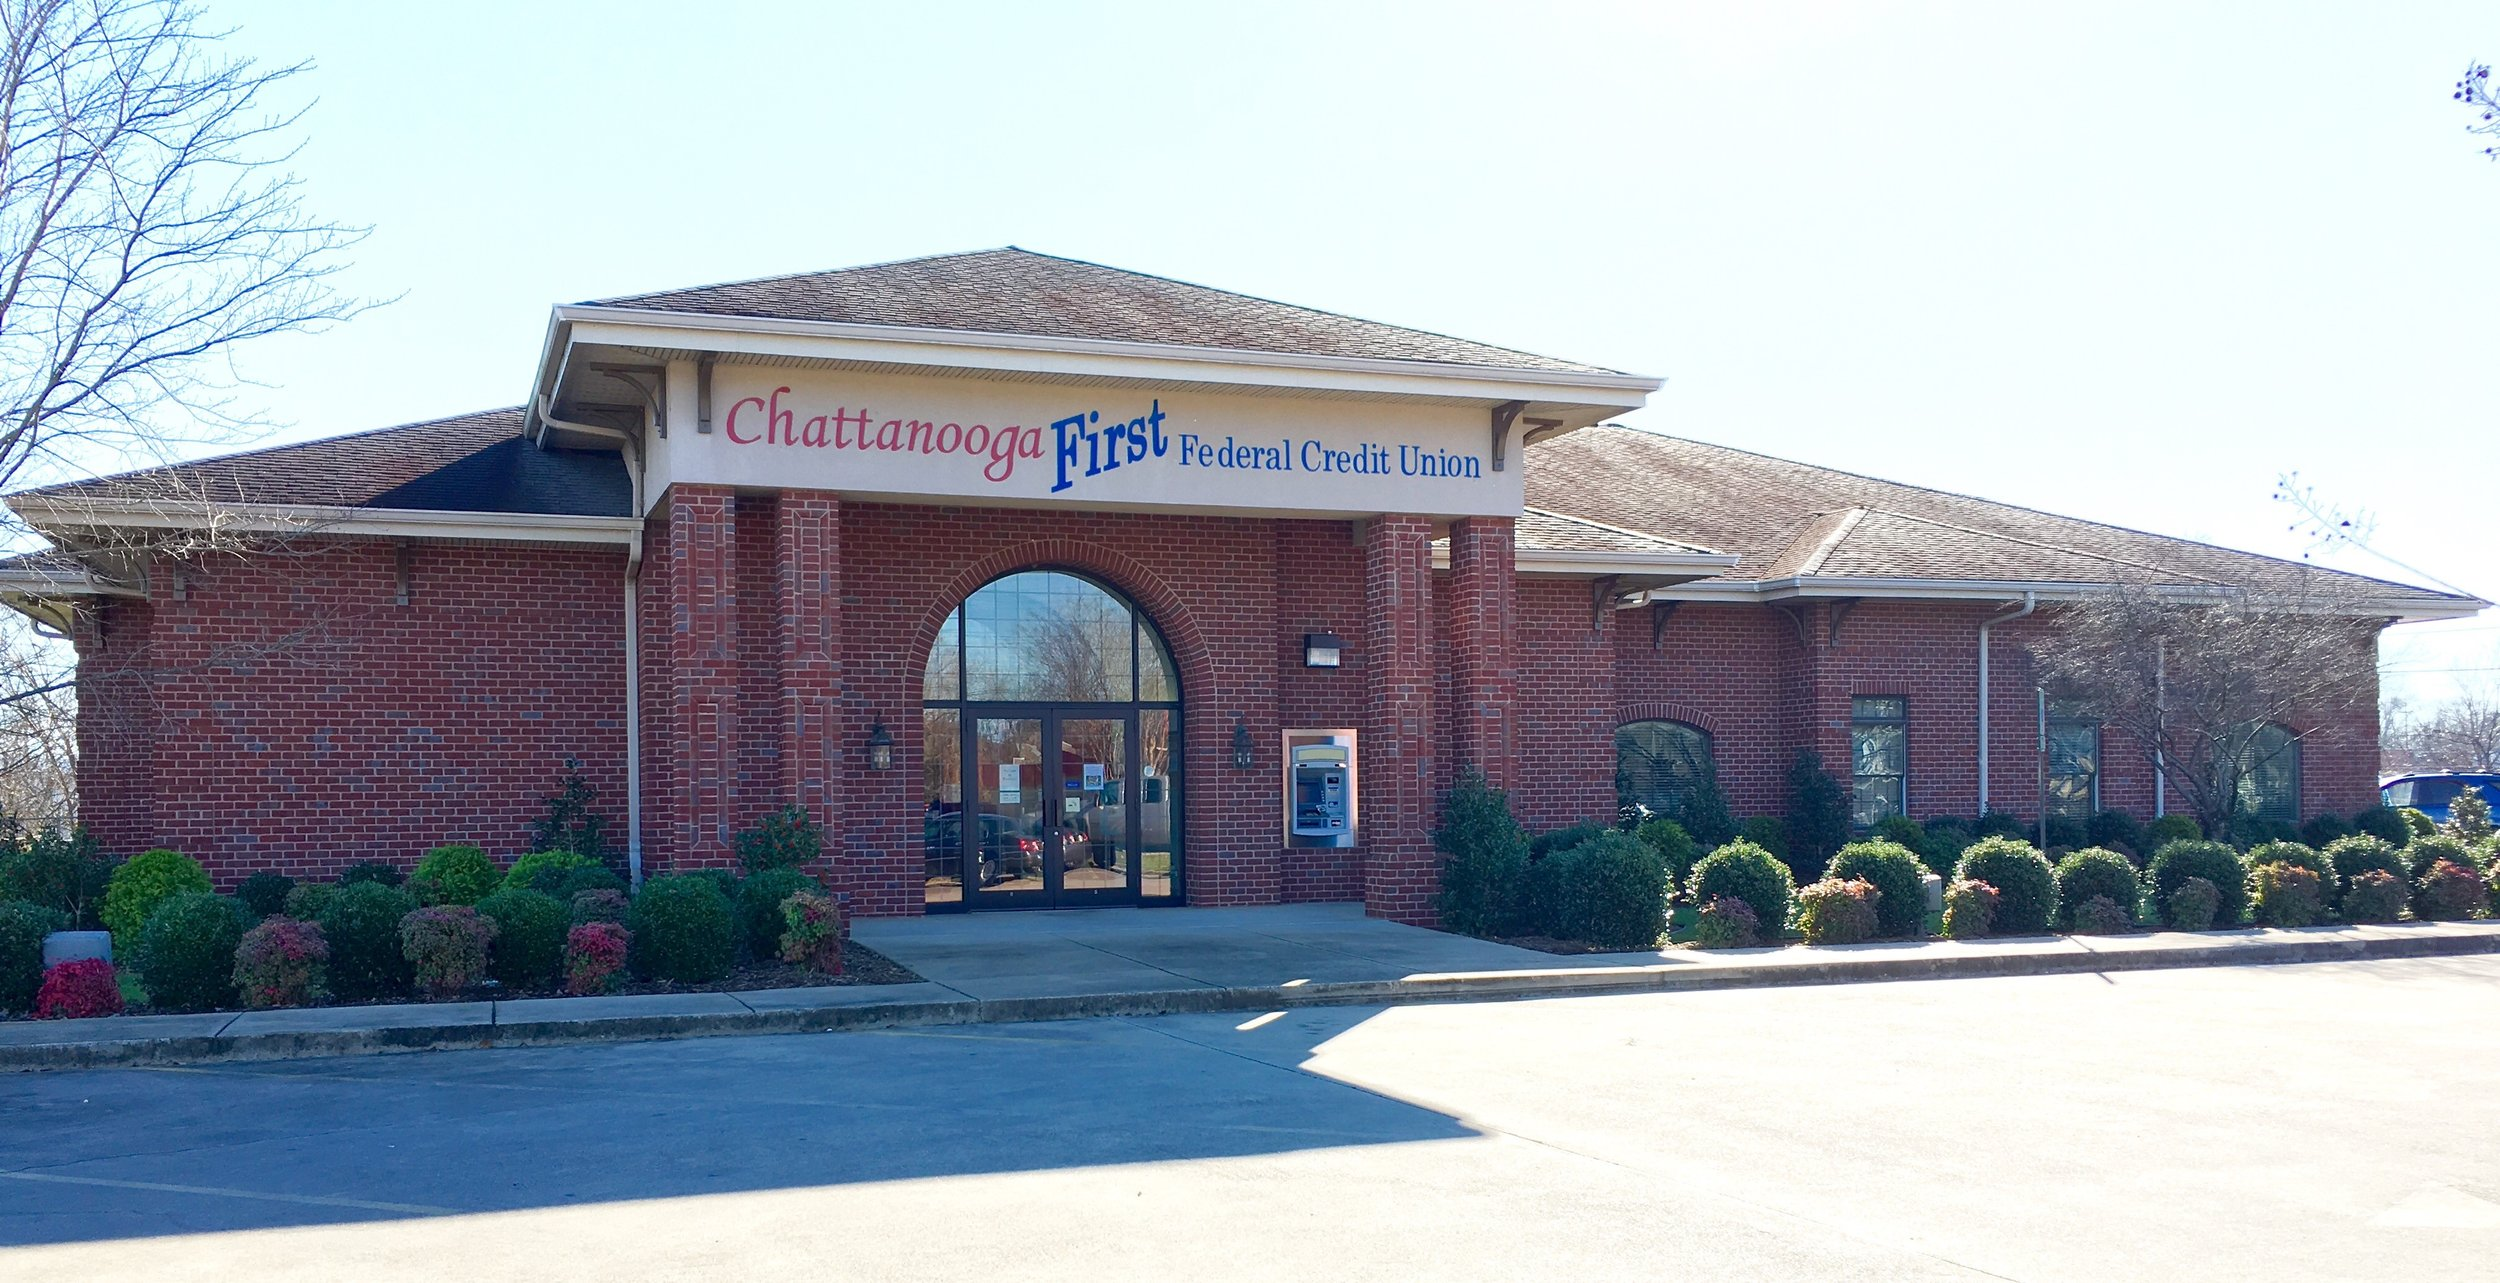 route 66 extended warranty — chattanooga first federal credit union